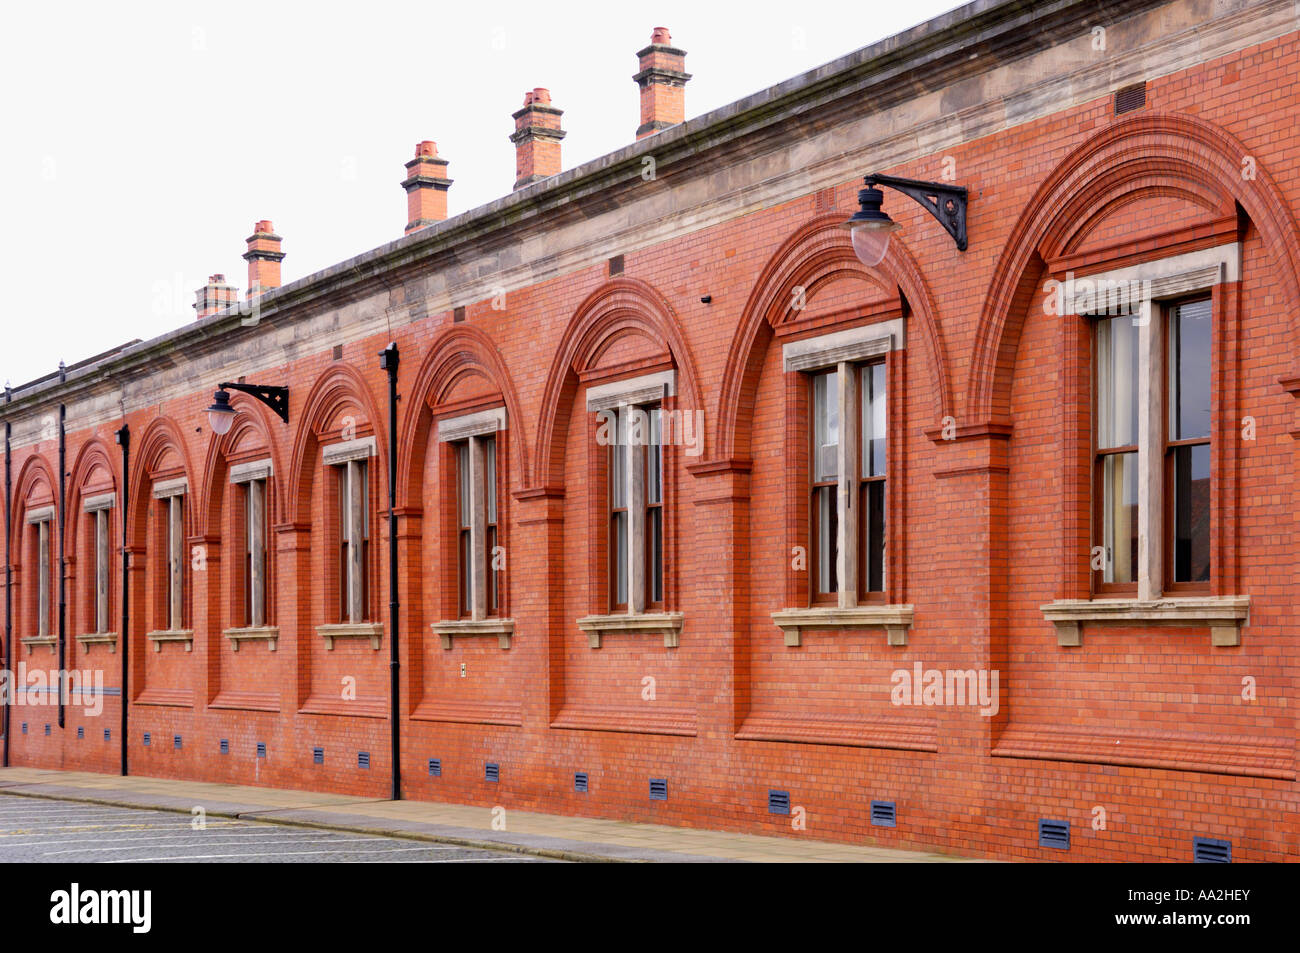 Port Sunlight Lever or Unilever soap factory near Liverpool England - Stock Image